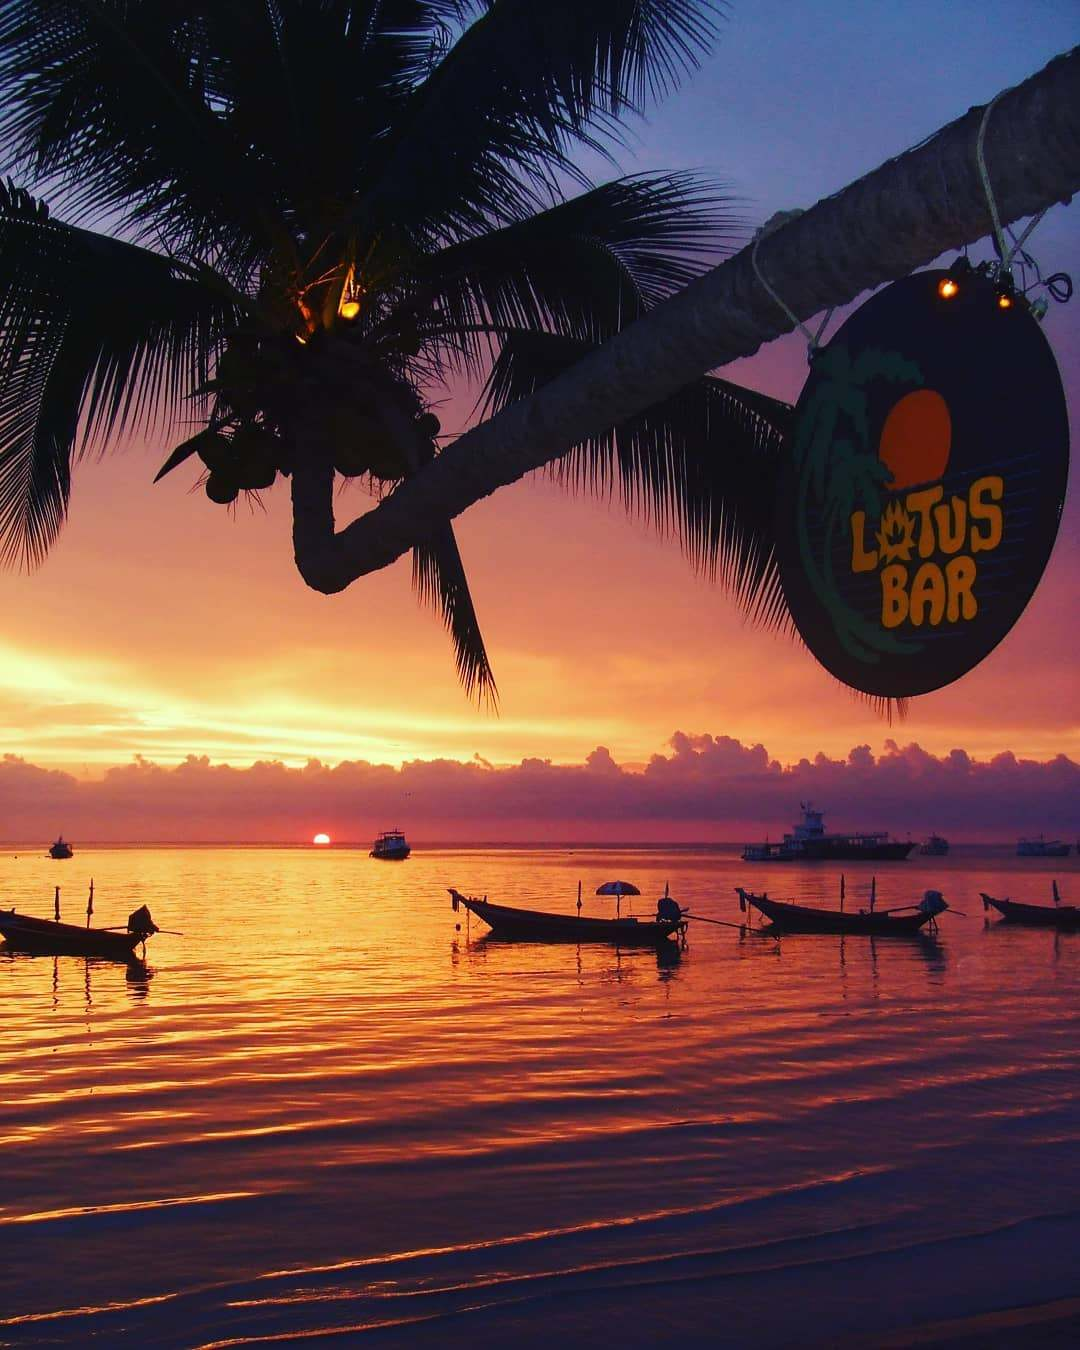 The palm tree of Lotus Bar on Sairee Beach, Koh Tao at sunset